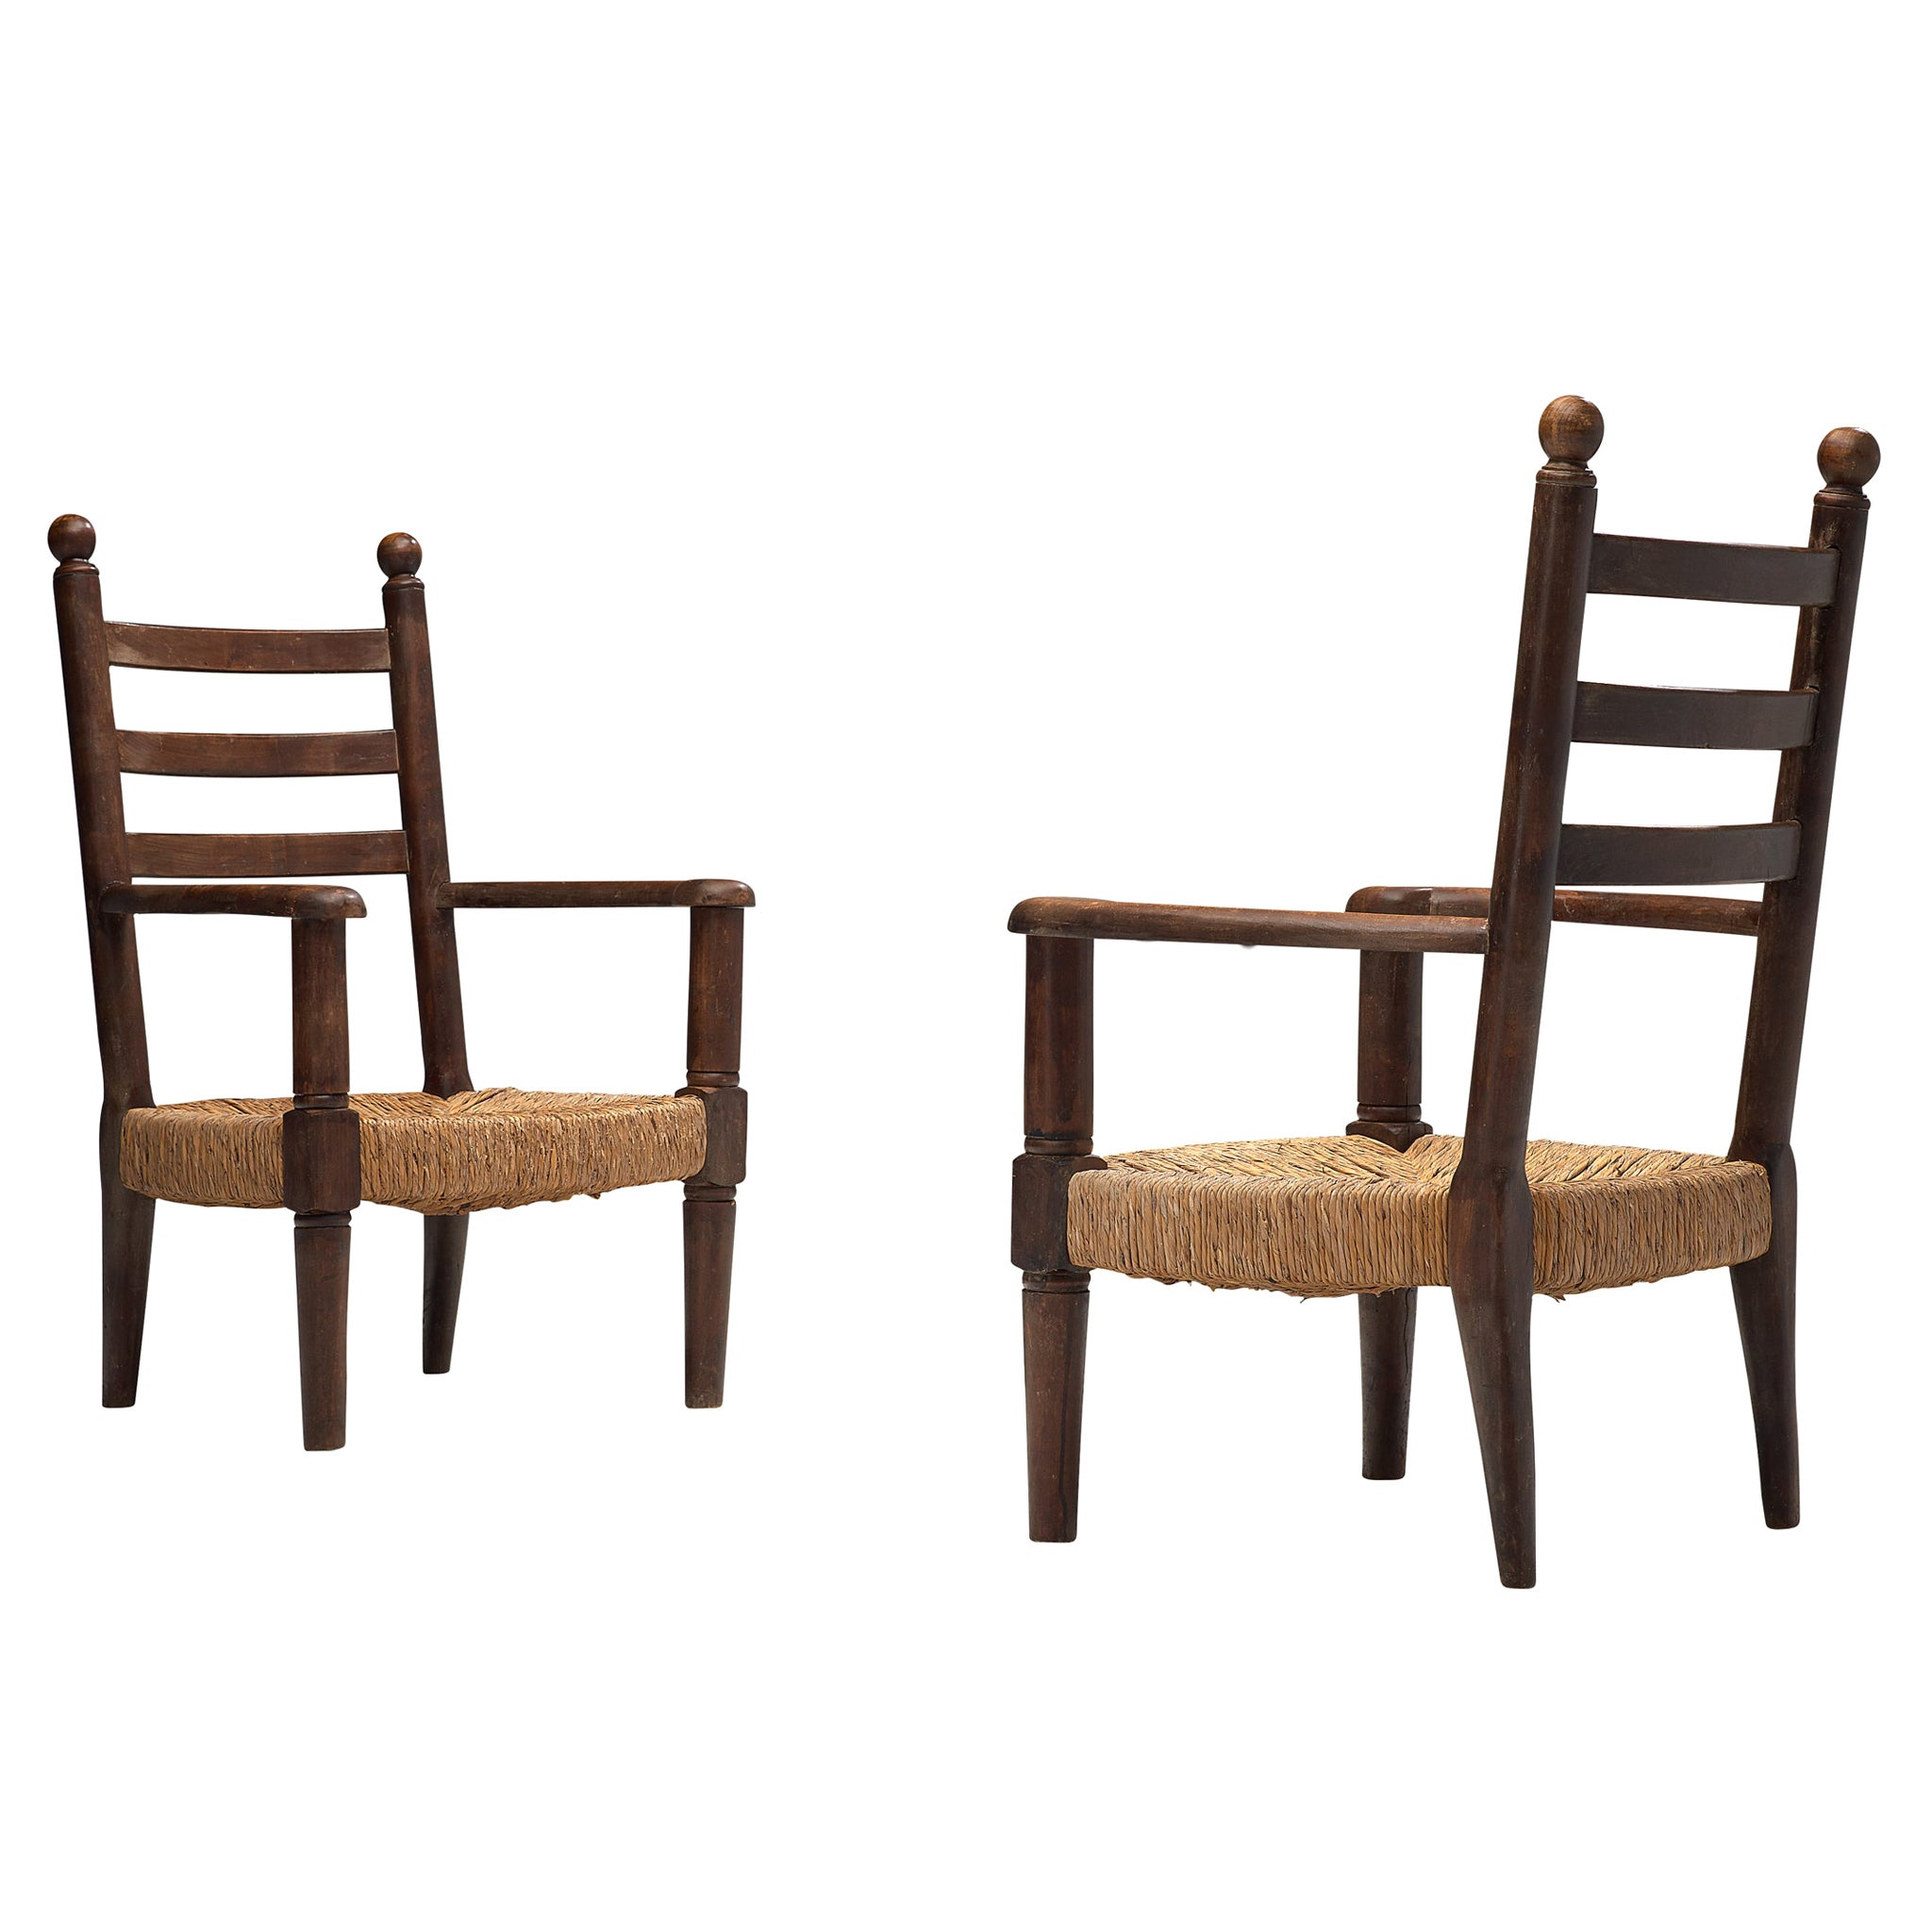 French Armchairs with Cane Seats, 1950s